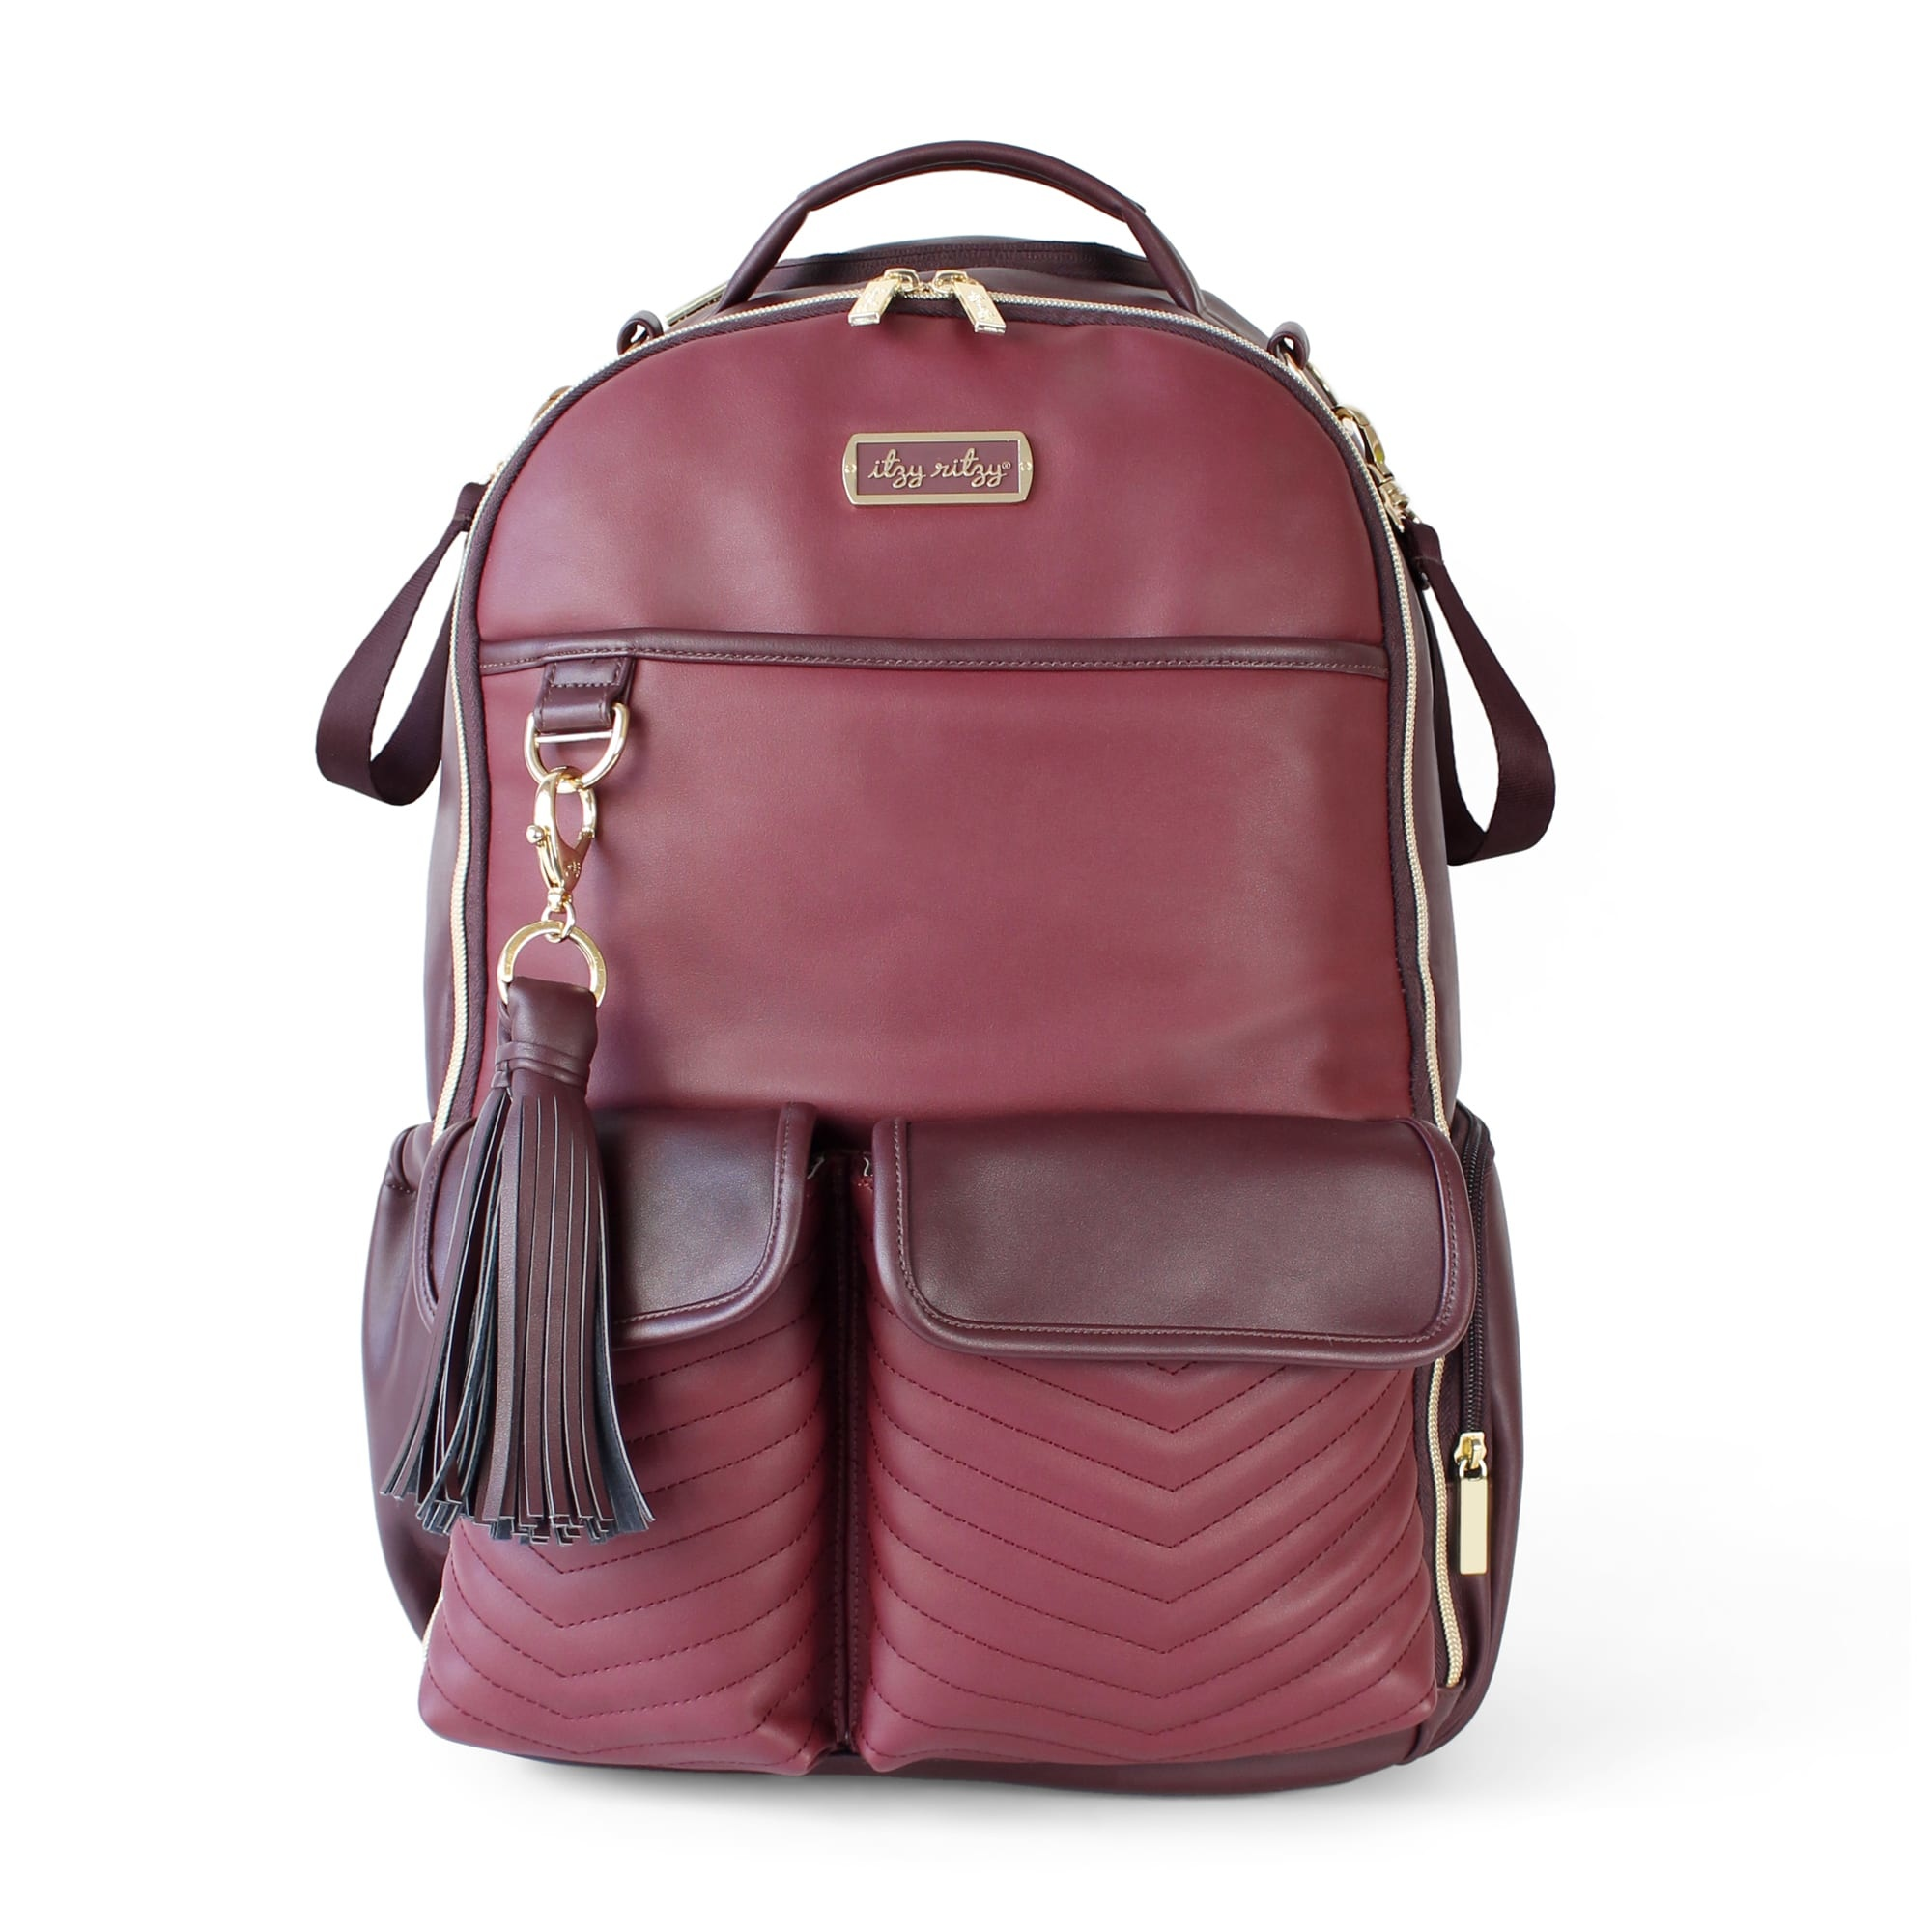 Itzy Ritzy Diaper Bag Backpack O Merlot